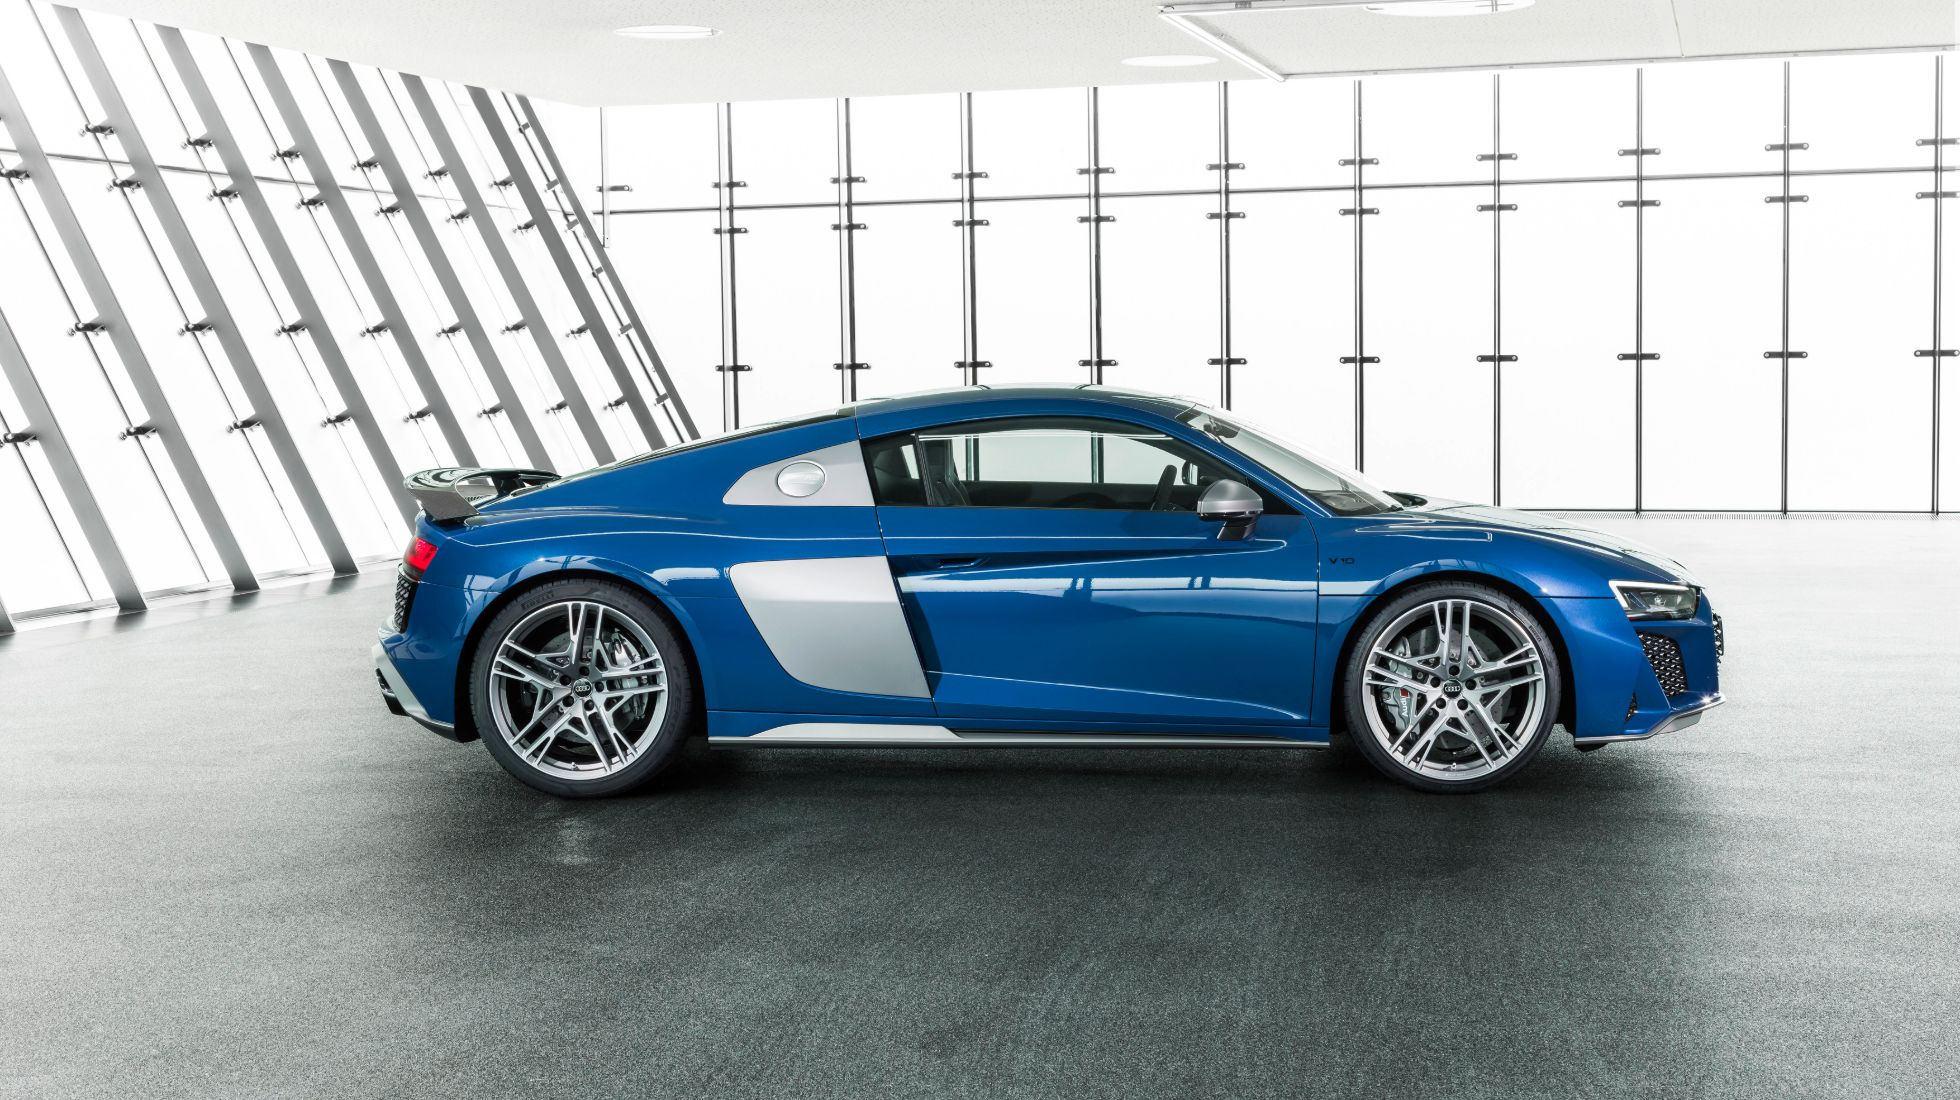 Refreshed Audi R8 priced for Mzansi market